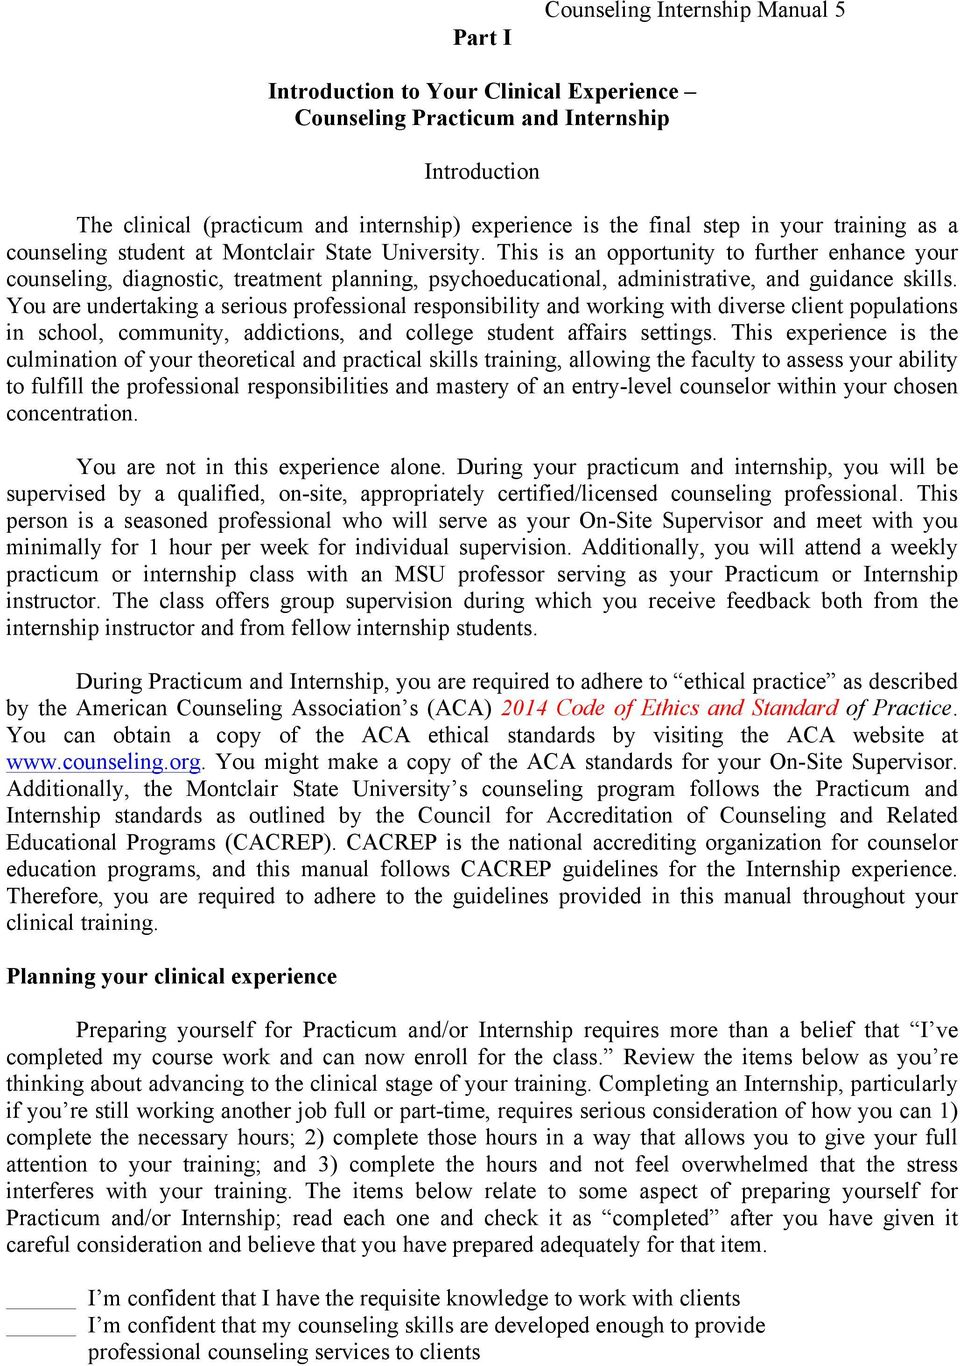 This is an opportunity to further enhance your counseling, diagnostic, treatment planning, psychoeducational, administrative, and guidance skills.